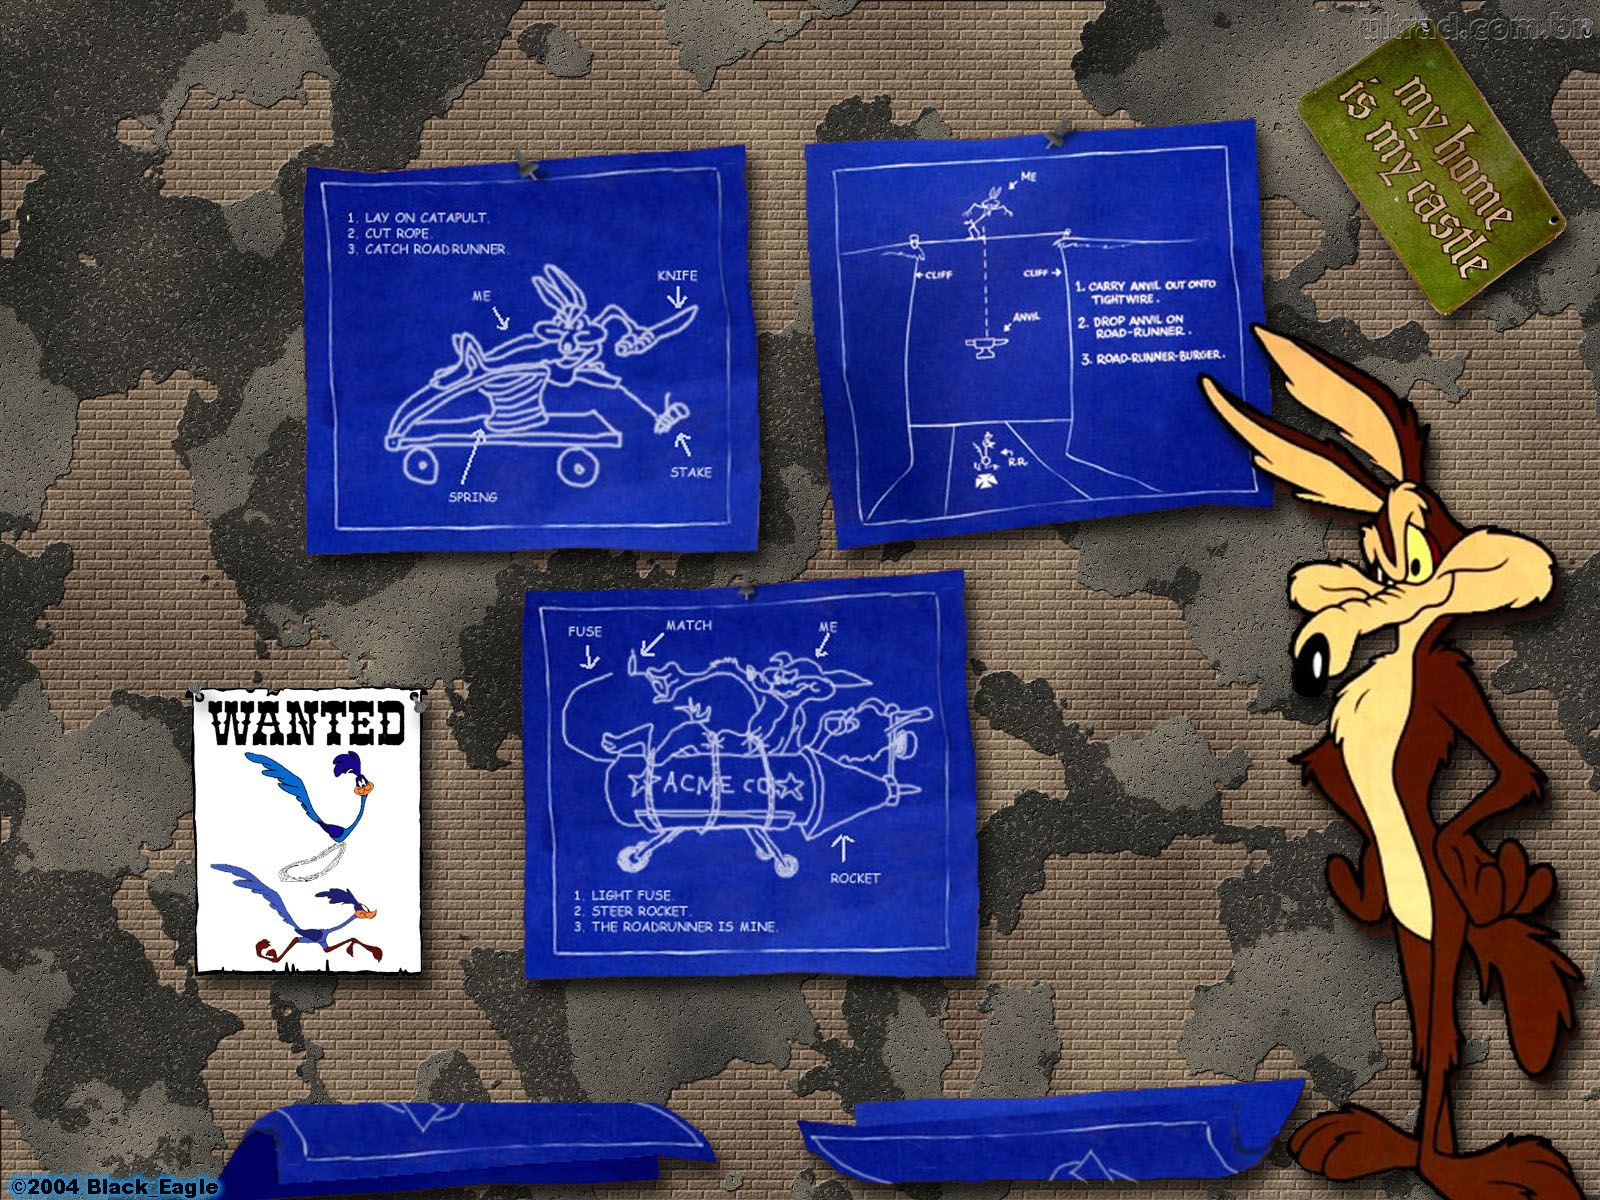 Wile E. Coyote HD Wallpapers